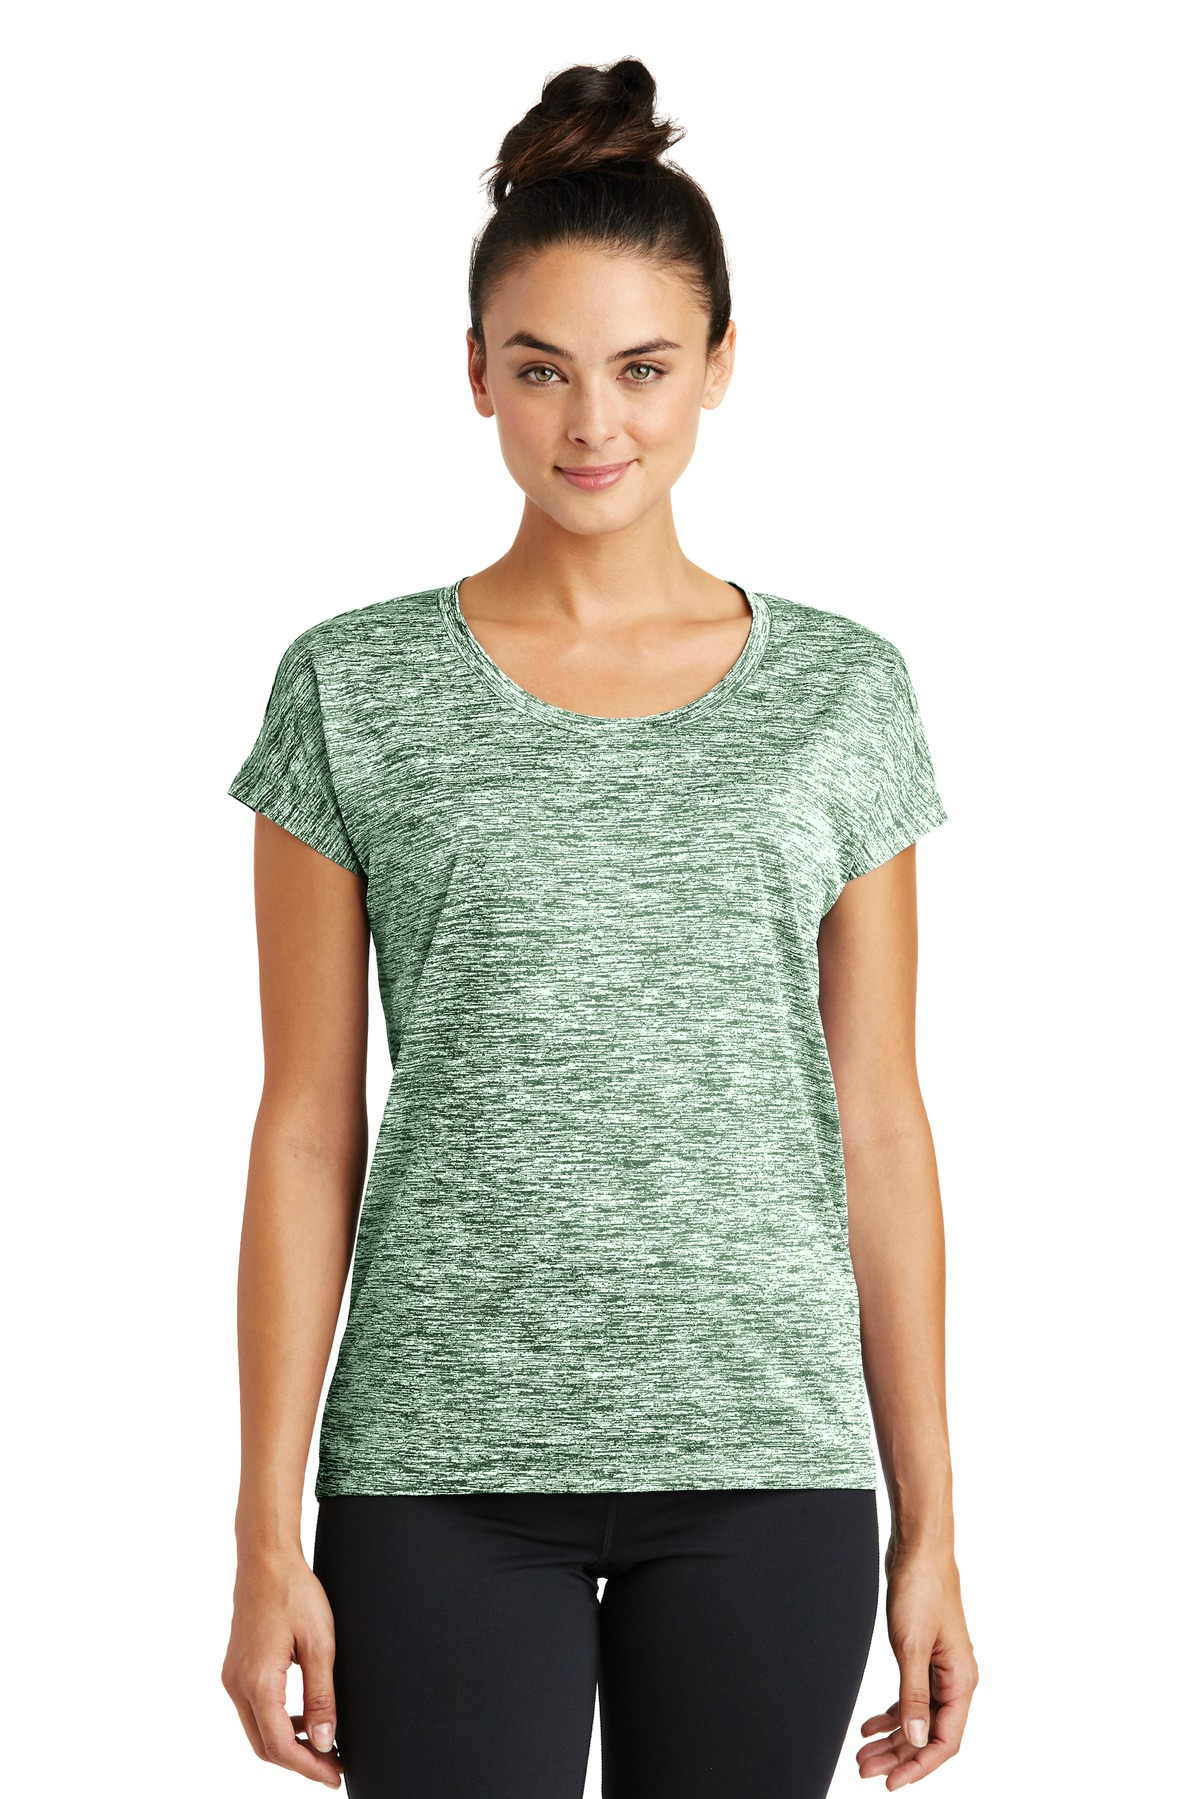 Sport tek womens heather dry fit shirt workout performance for Basic shirts for women